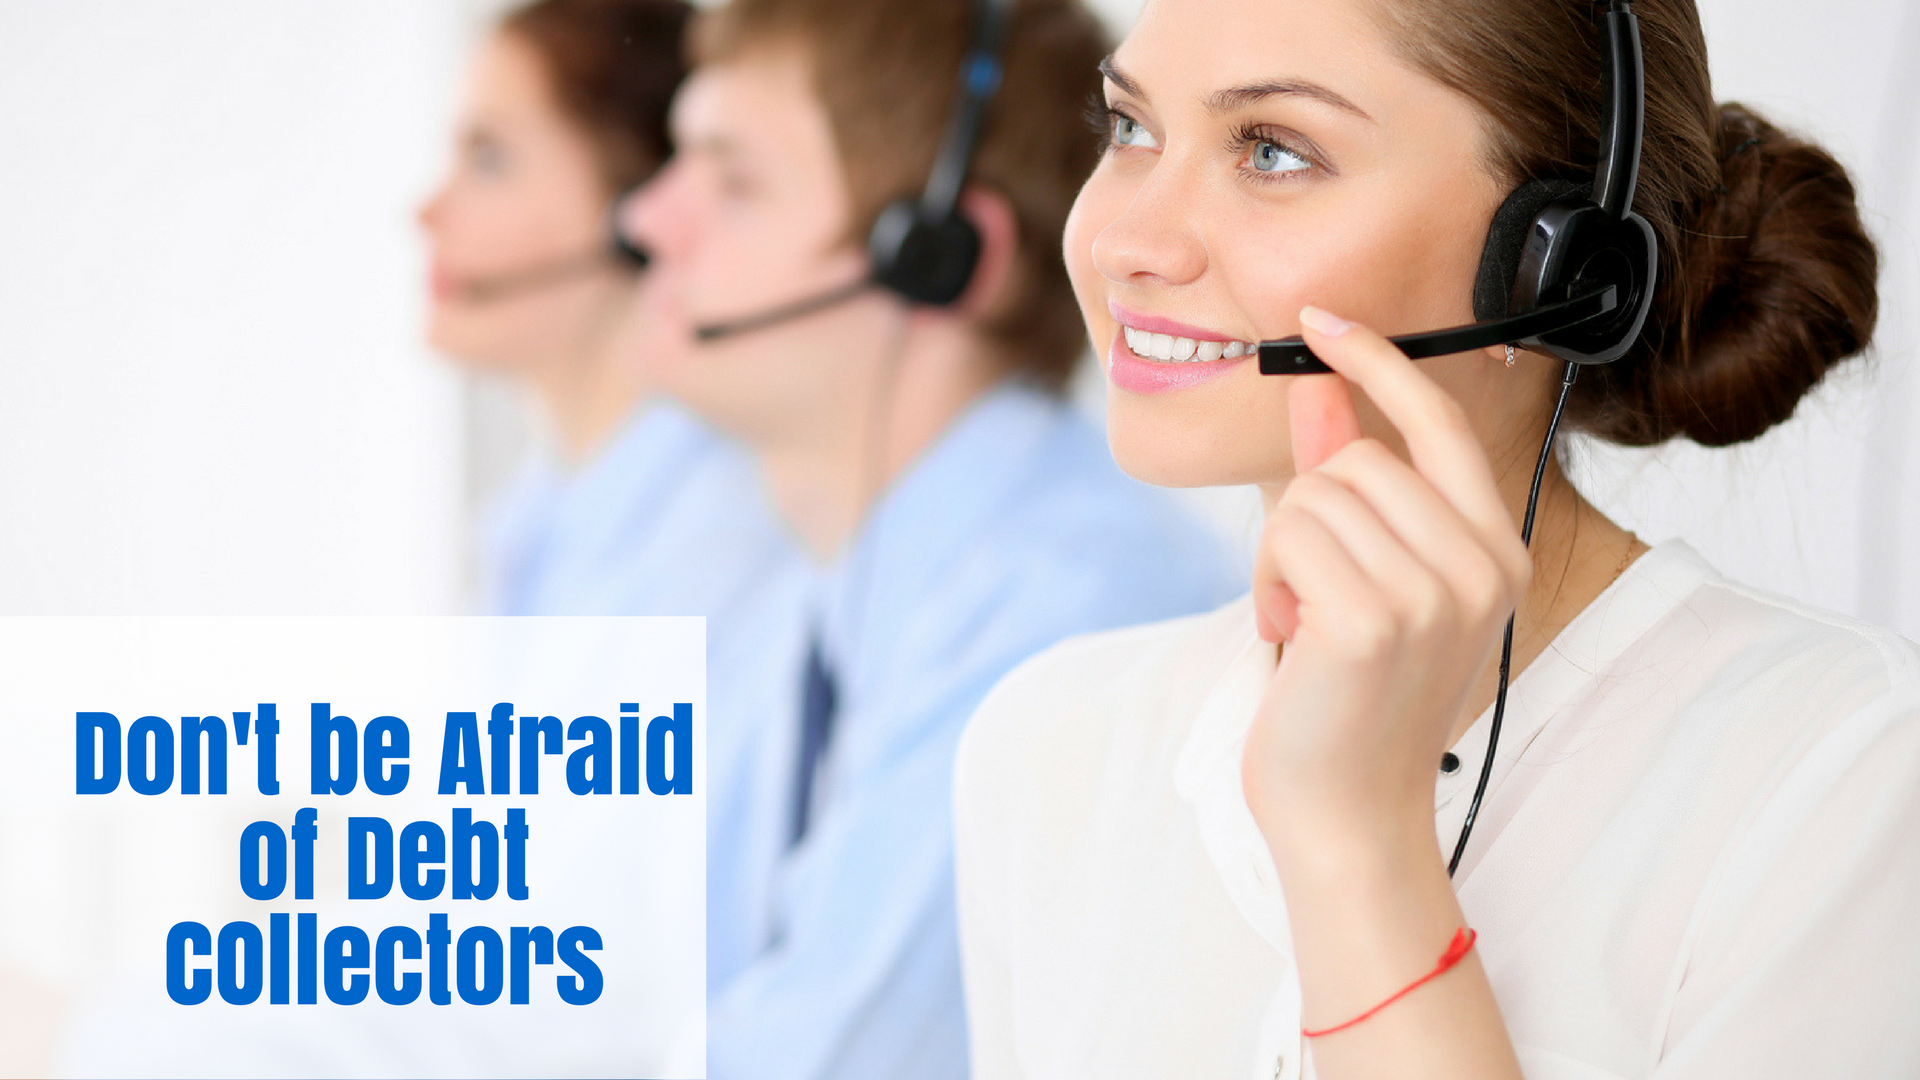 Don't be Afraid of Debt Collectors